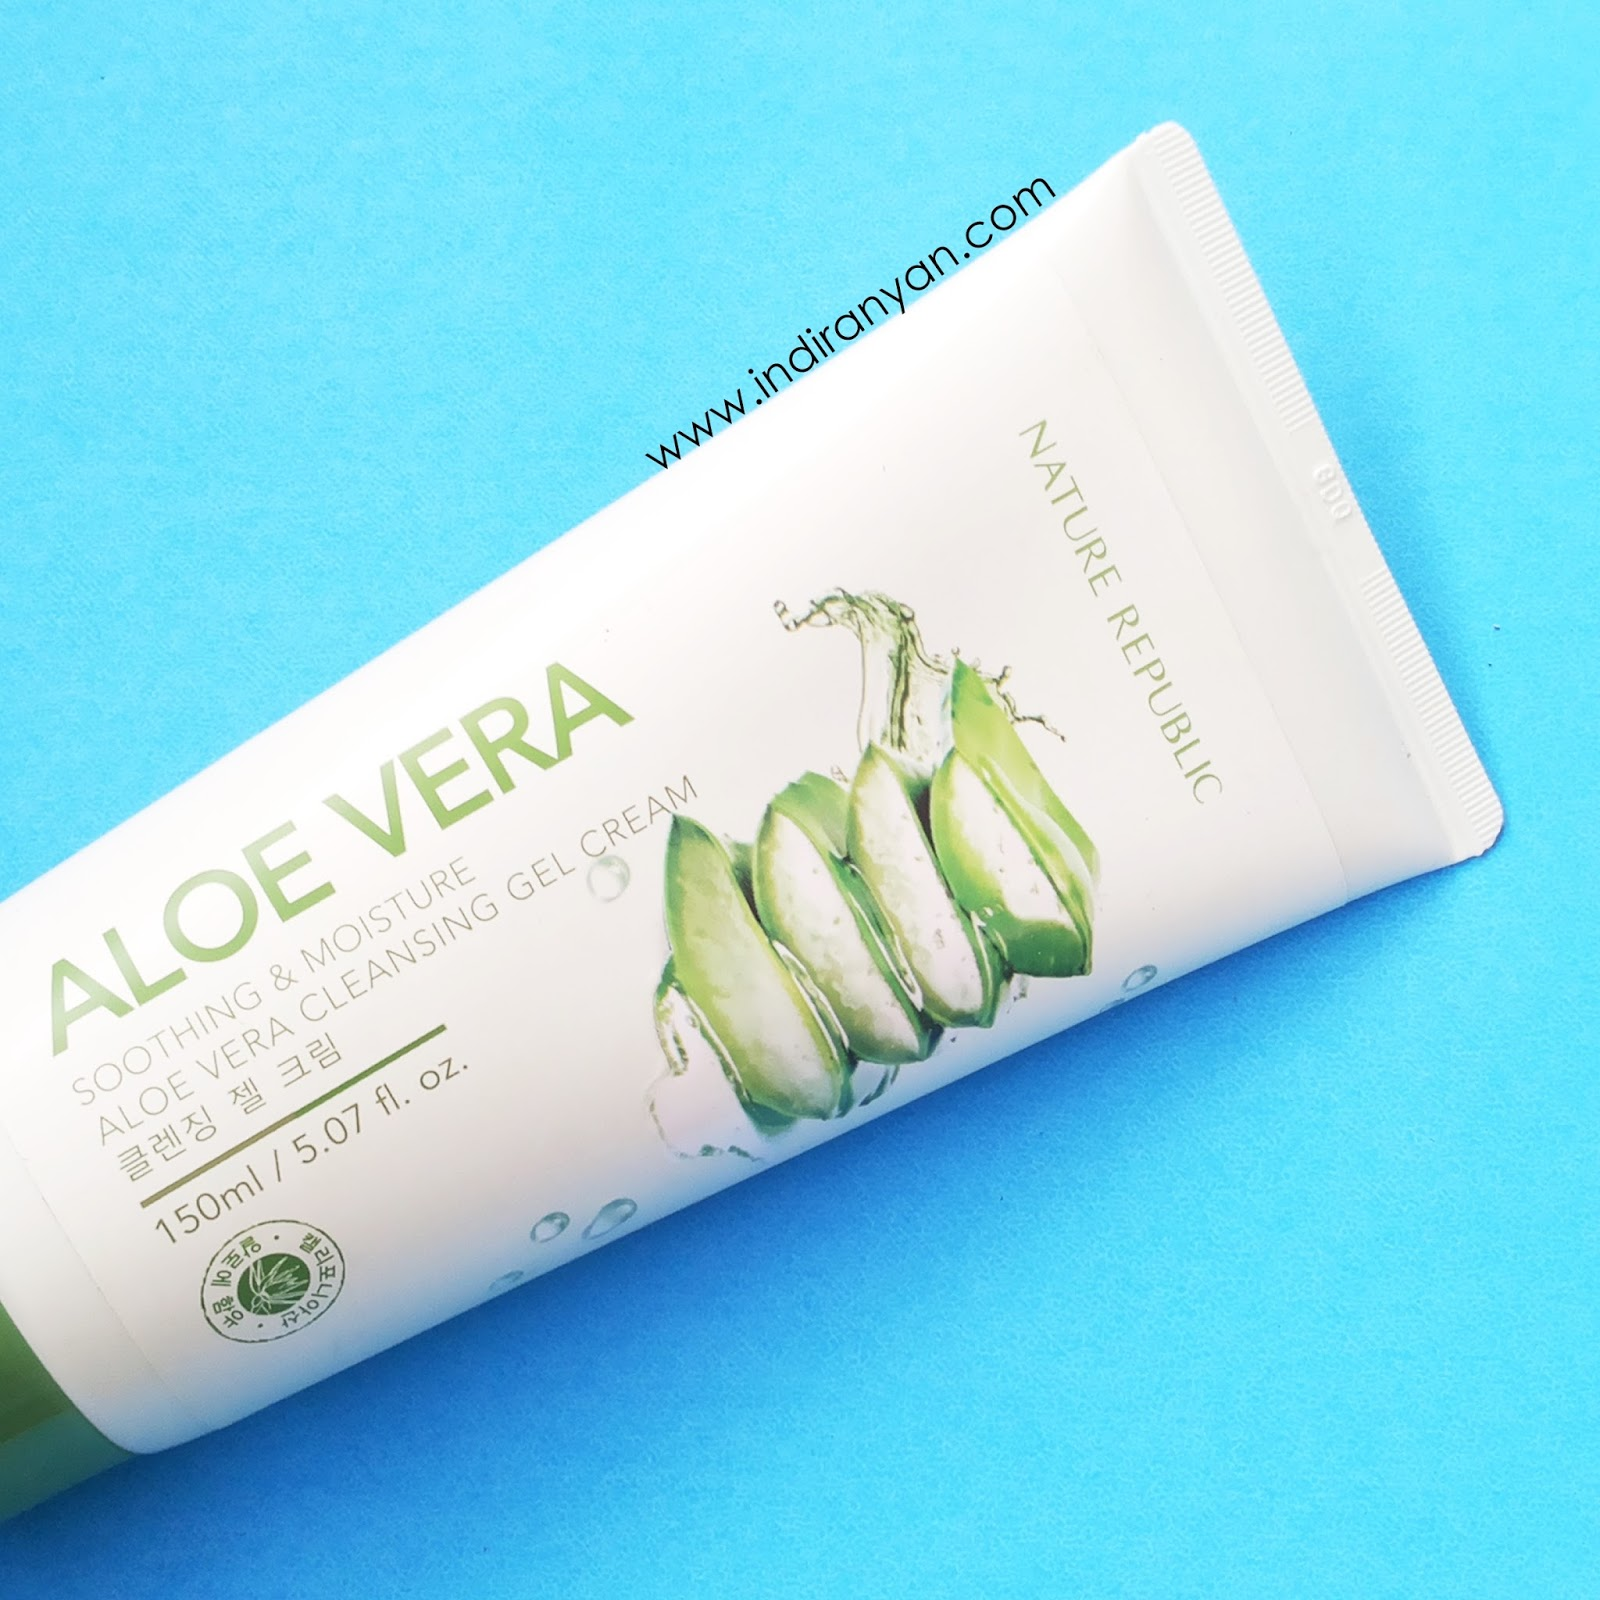 nature-republic-aloe-vera-cleansing-gel-cream, nature-republic-aloe-vera-cleansing-gel-cream-review, makeup-remover-nature-republic